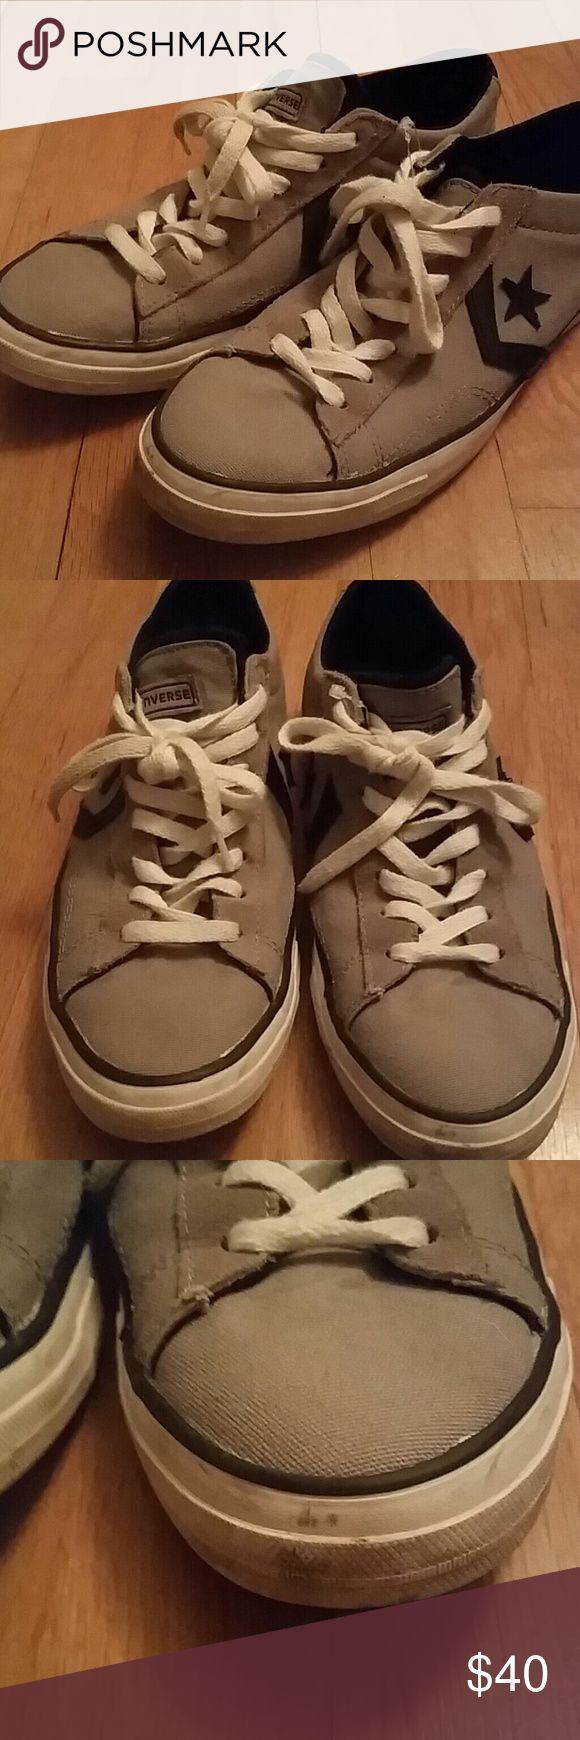 Mens Converse Rare Retro Star Chevron Low Tops Good condition, with some minor scuffs but rately worn. You will have a difficult time finding this design anywhere. Converse Shoes Sneakers